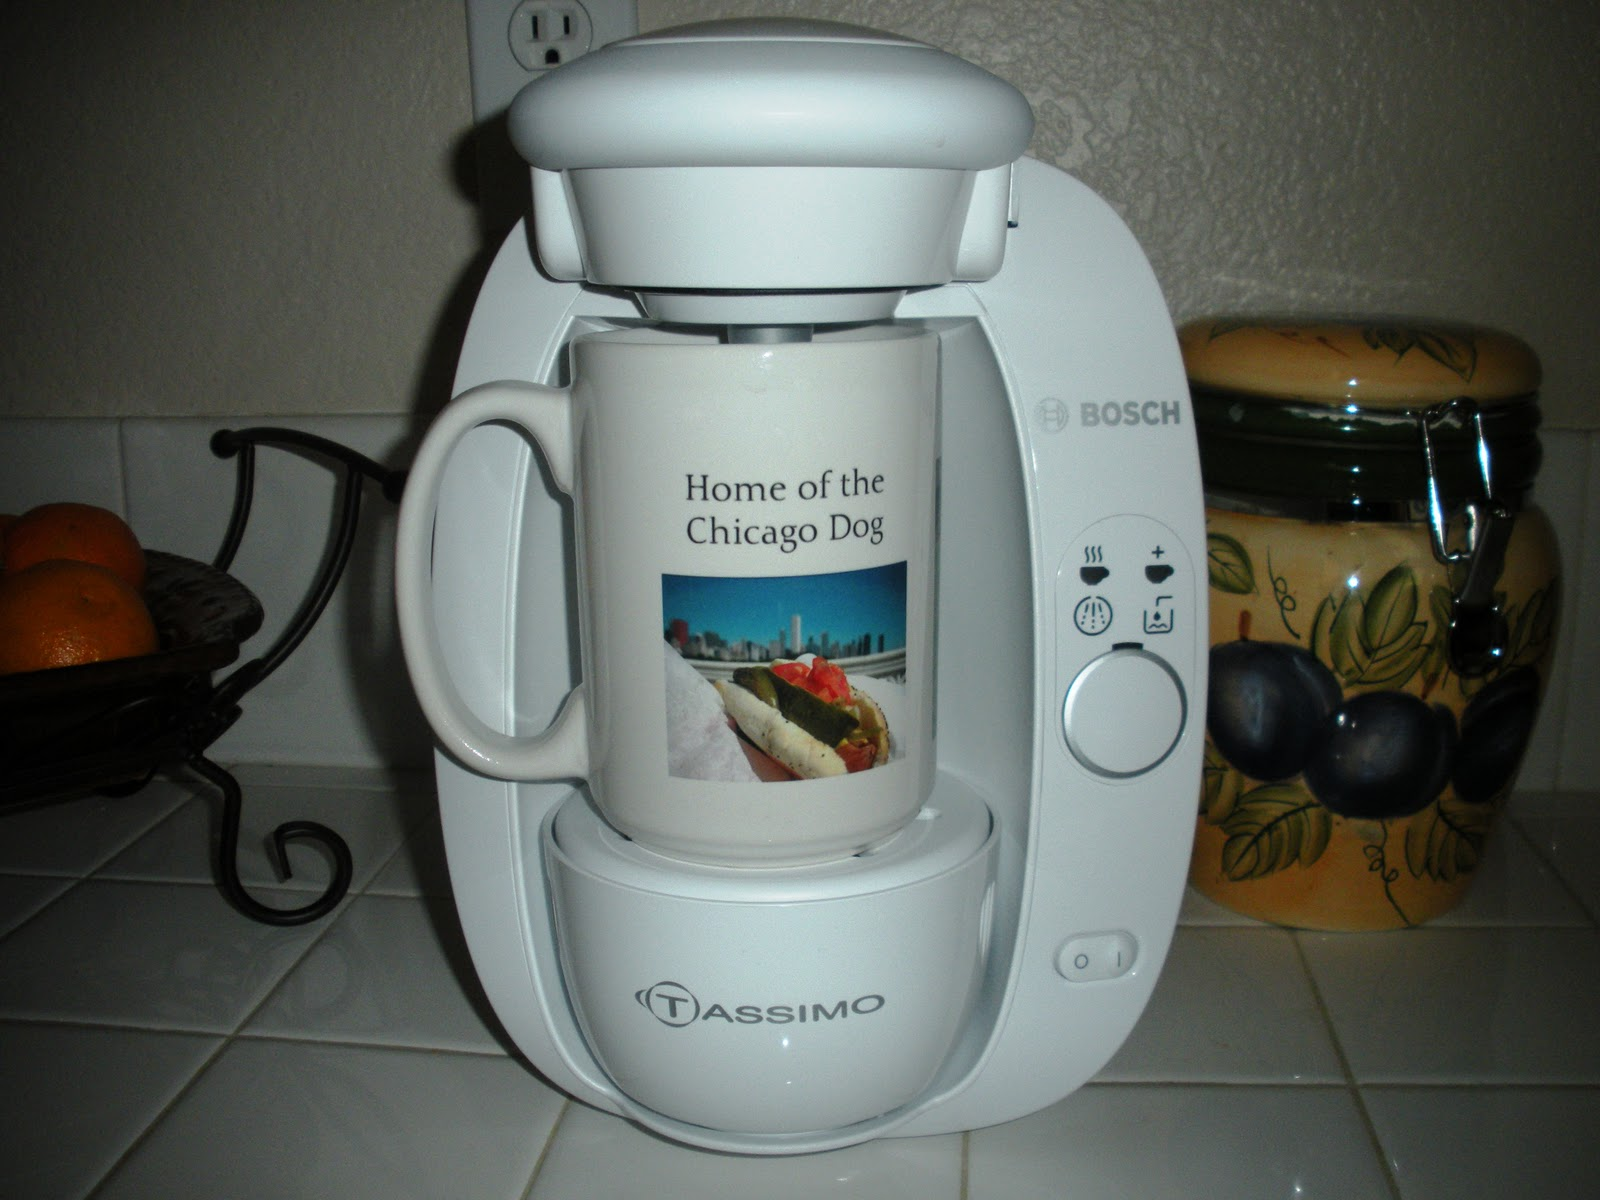 Gevalia Coffee Maker Cleaning Instructions : Tassimo Brewbot For Me...And YOU! - Mommy of a Monster & Twins